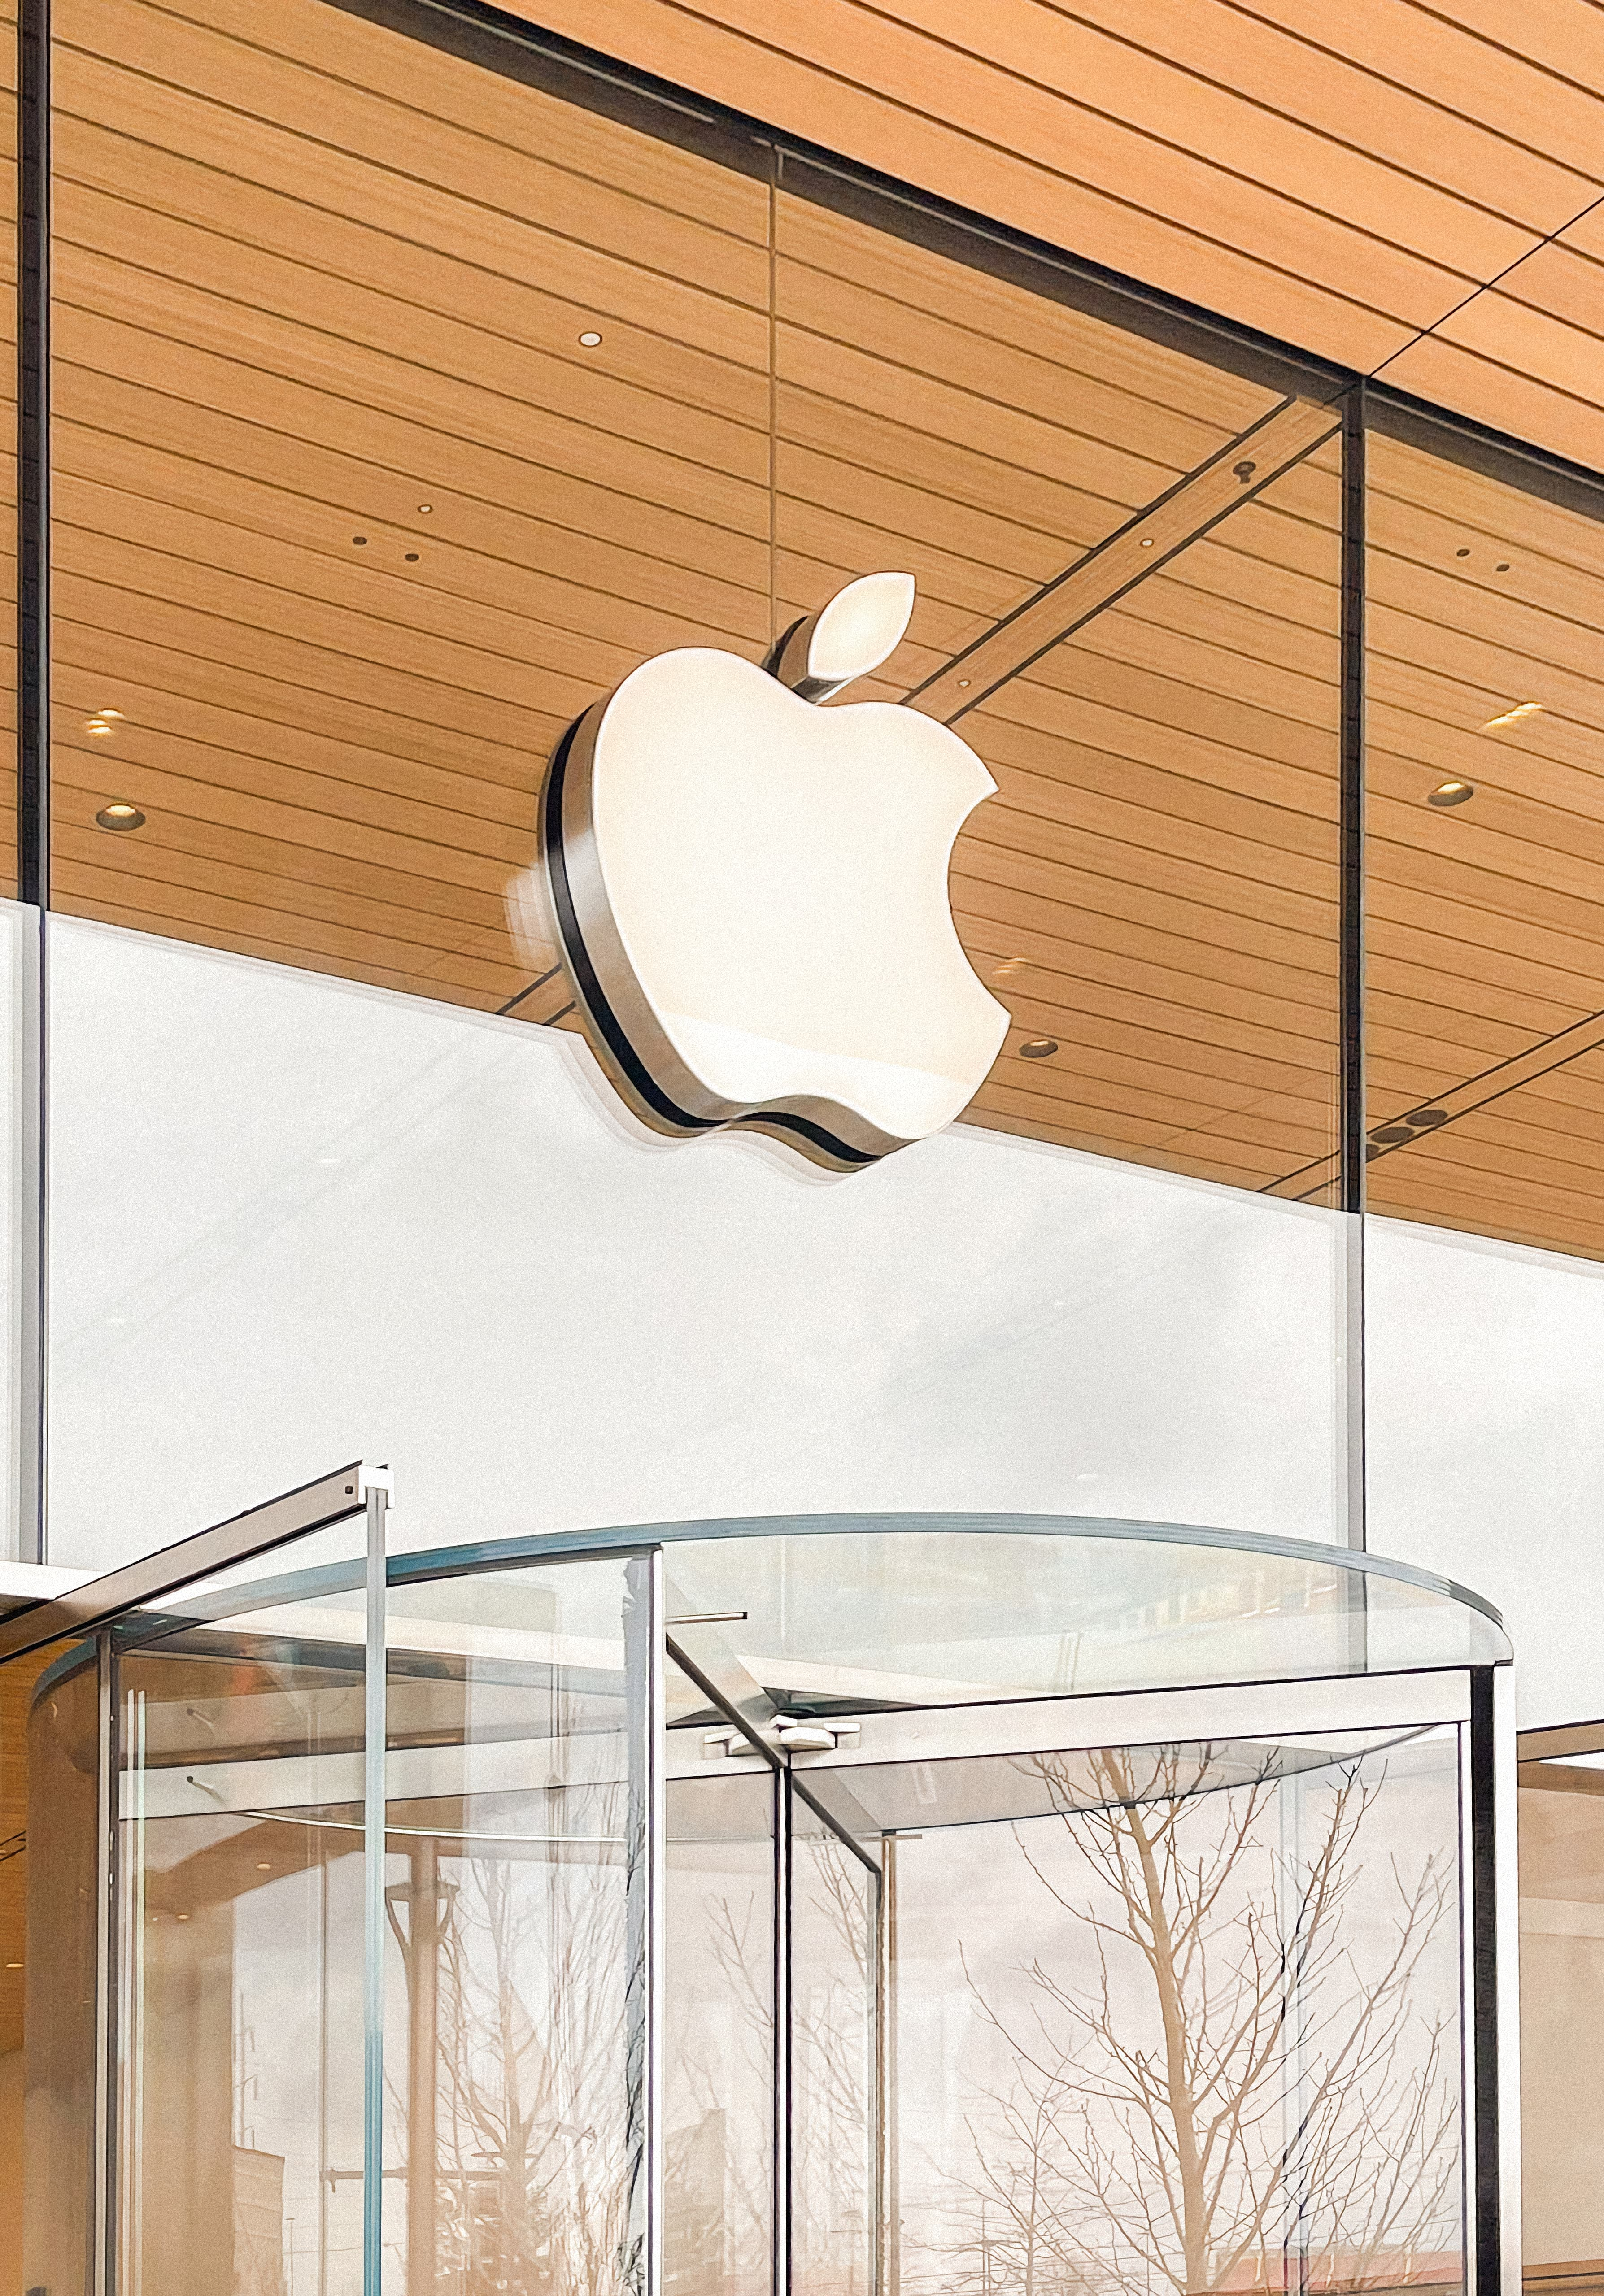 The Apple logo on the front of Apple Fritz Farm.